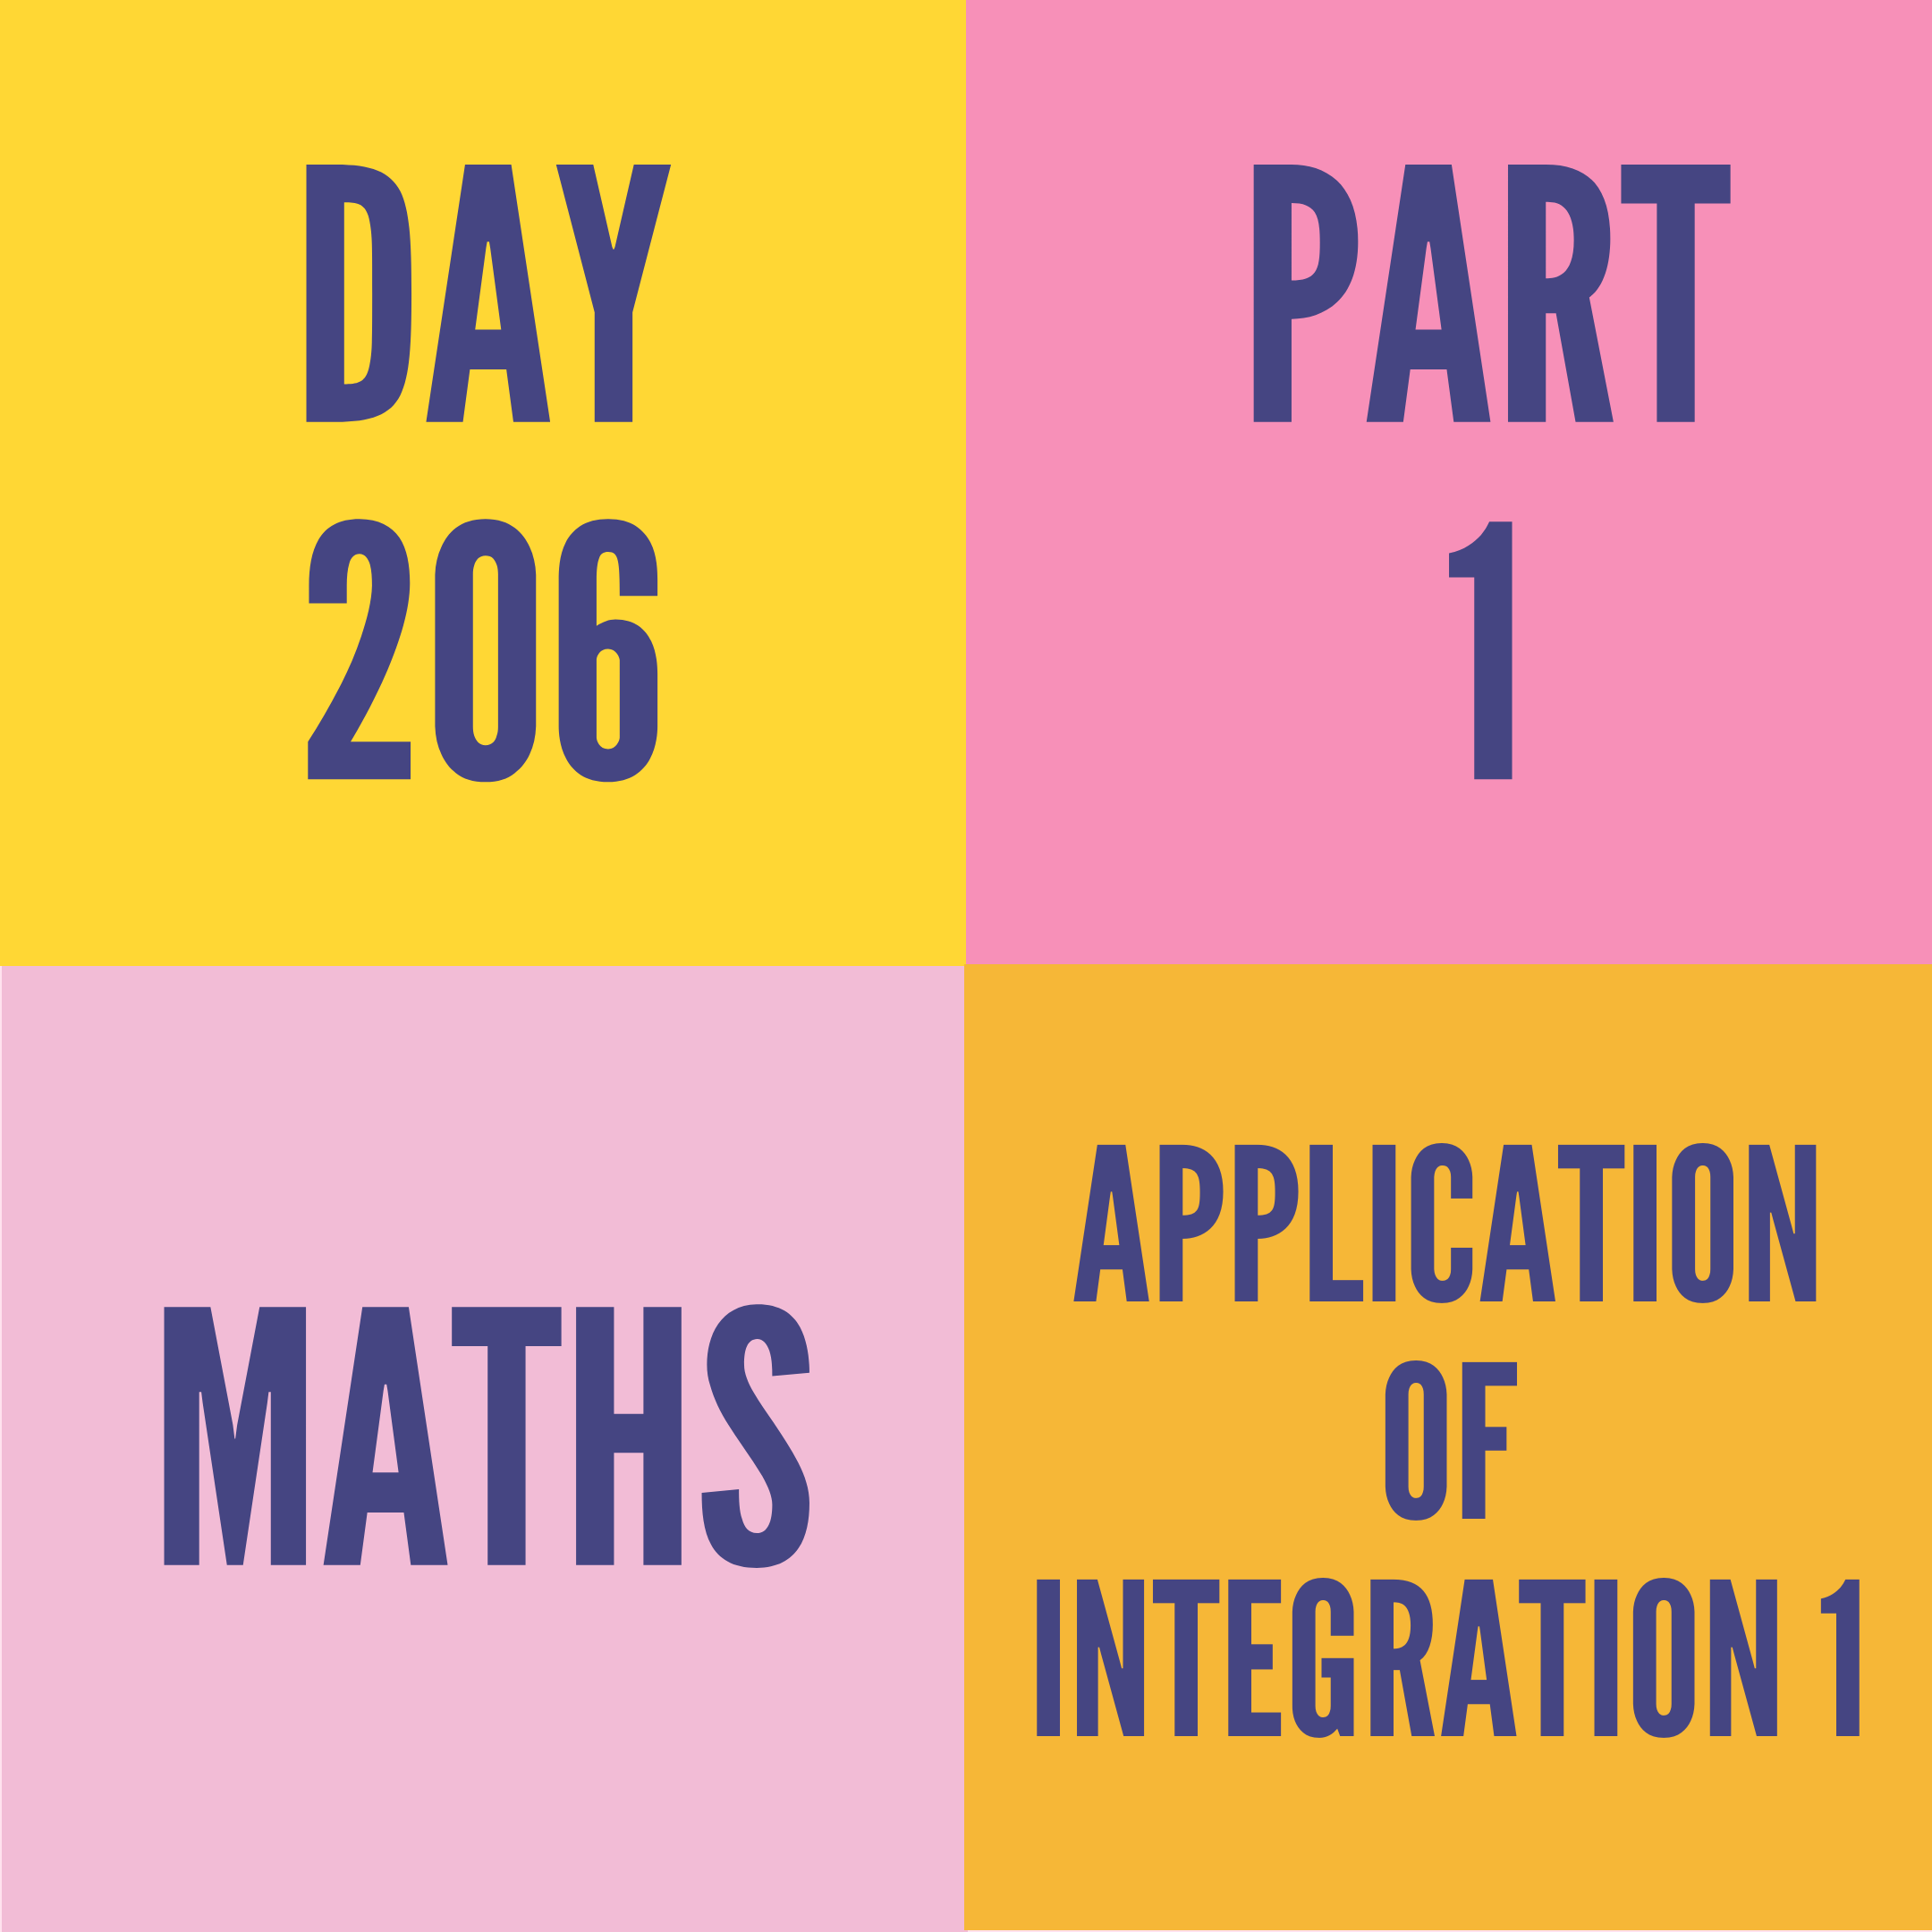 DAY-206 PART-1 APPLICATION OF INTEGRATION 1